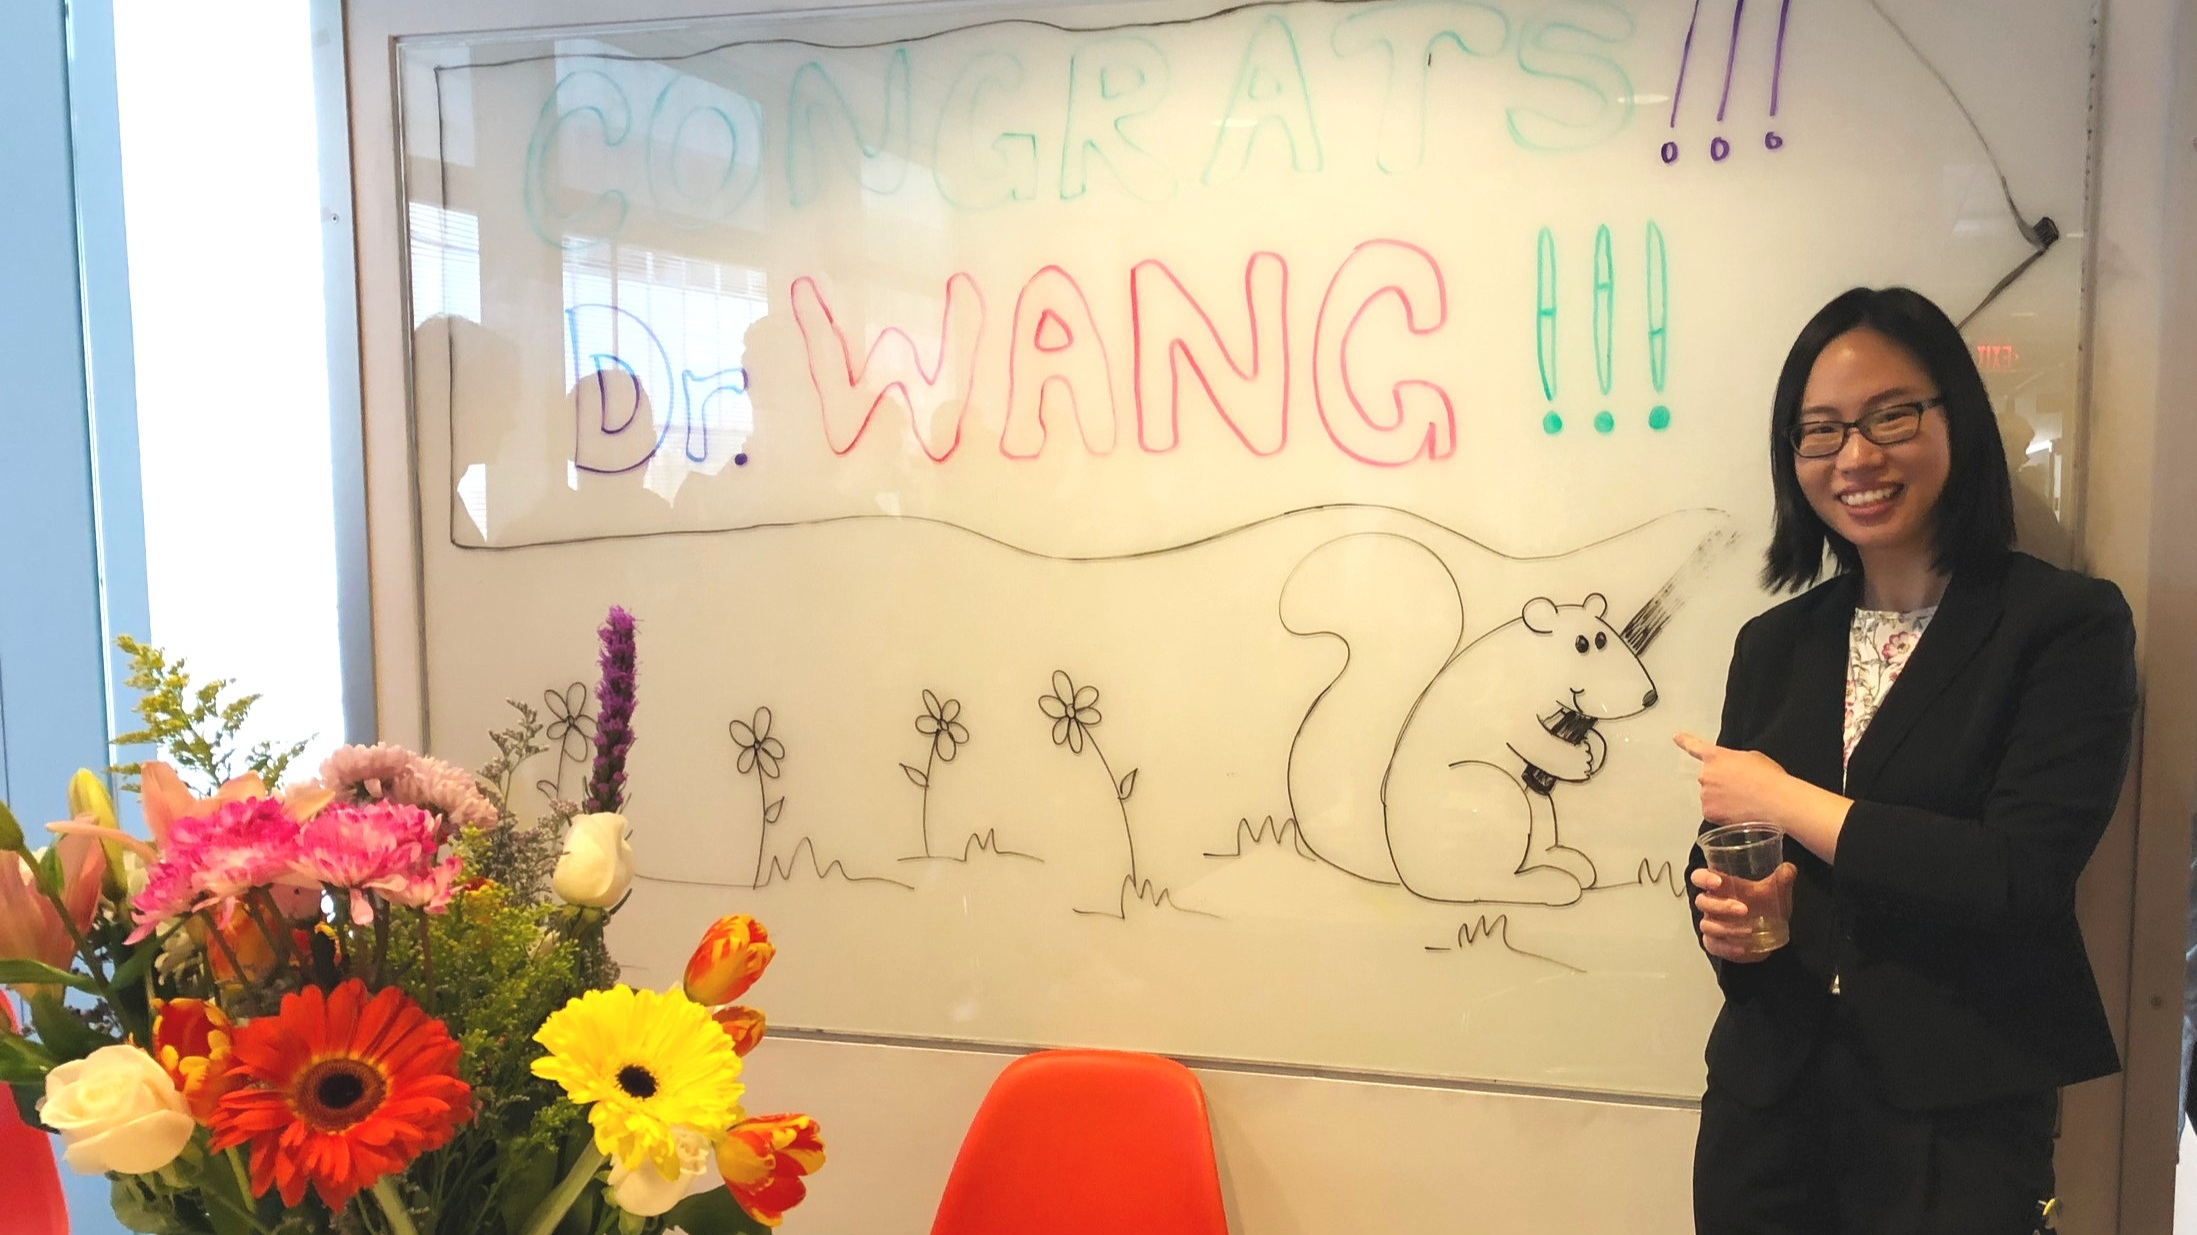 Newly minted Dr. Wang!   In March 2019, student Ruojun Wang successfully defended her thesis work and now has her PhD! After her fantastic presentation, the lab celebrated with lots of food and an adorable squirrel drawn by rotation student Thais Klevorn.